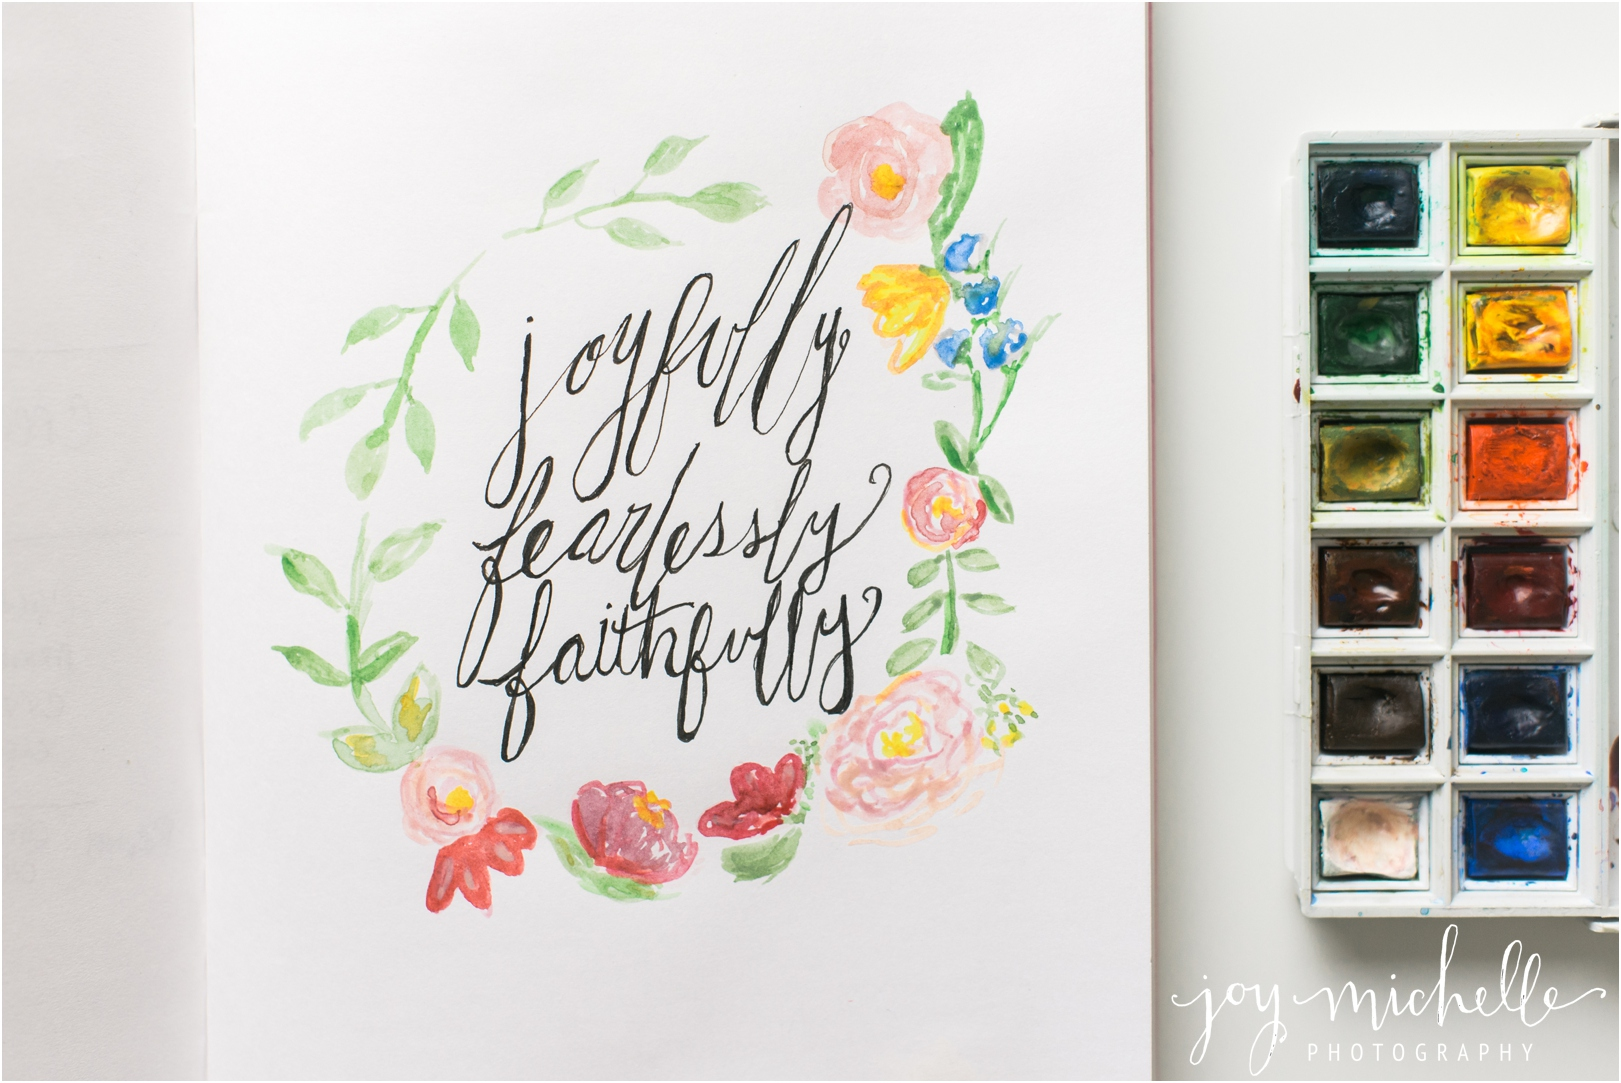 watercolor flowers and calligraphy